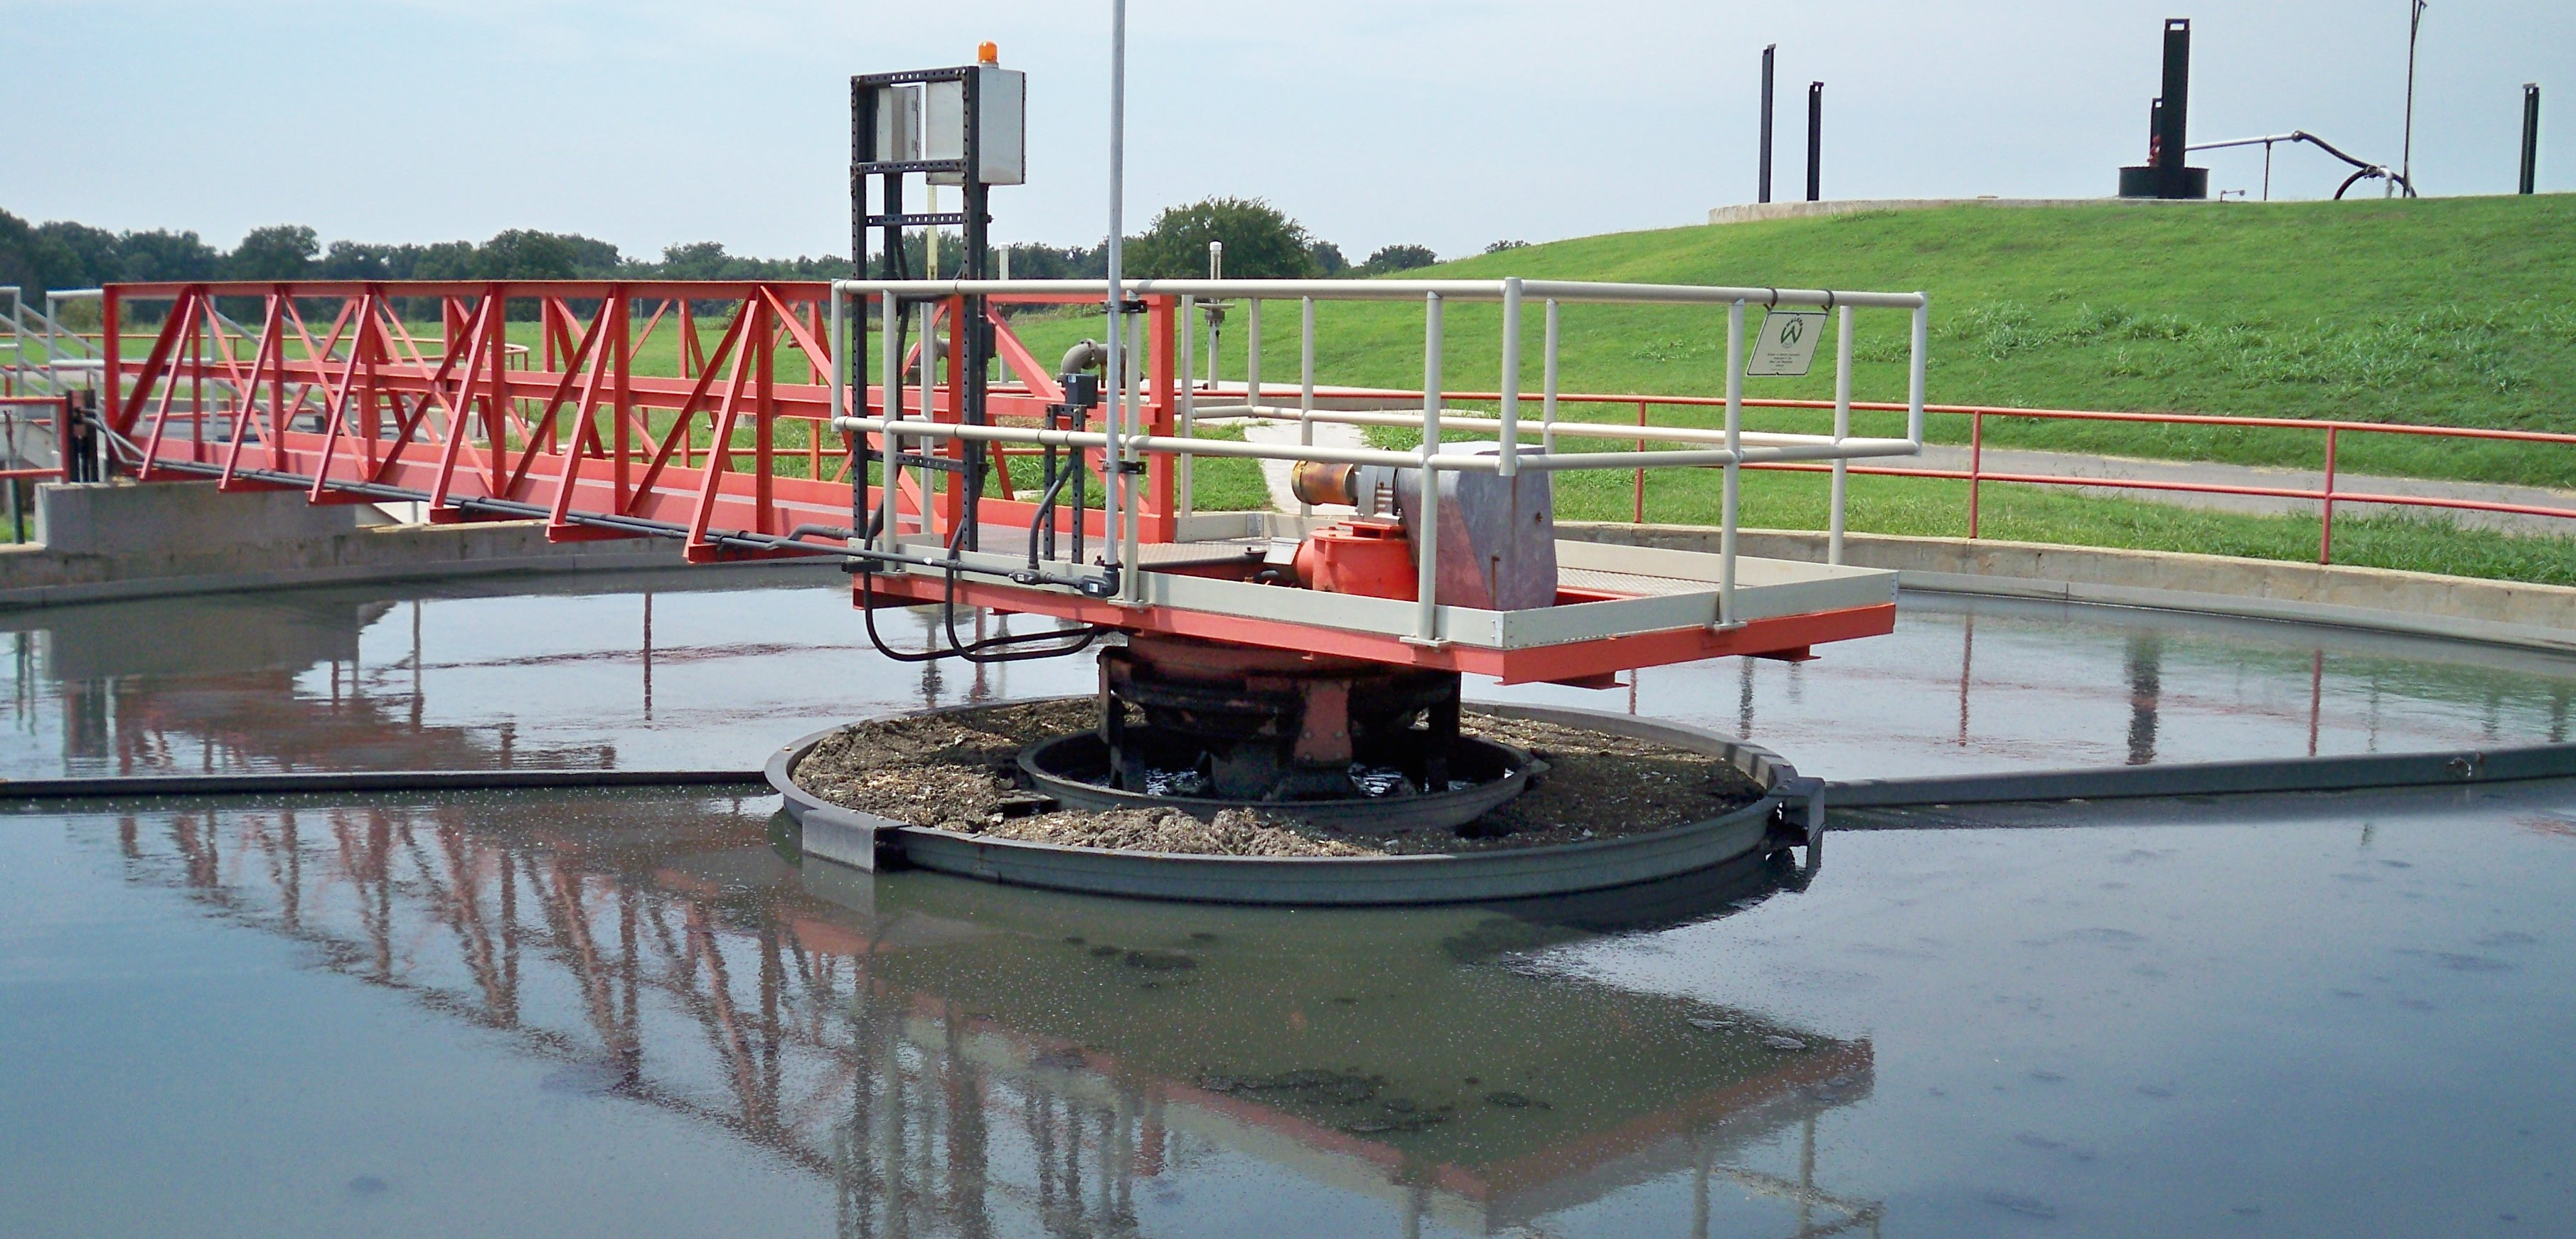 A picture of the primary clarifier for a wastewater treatment plant